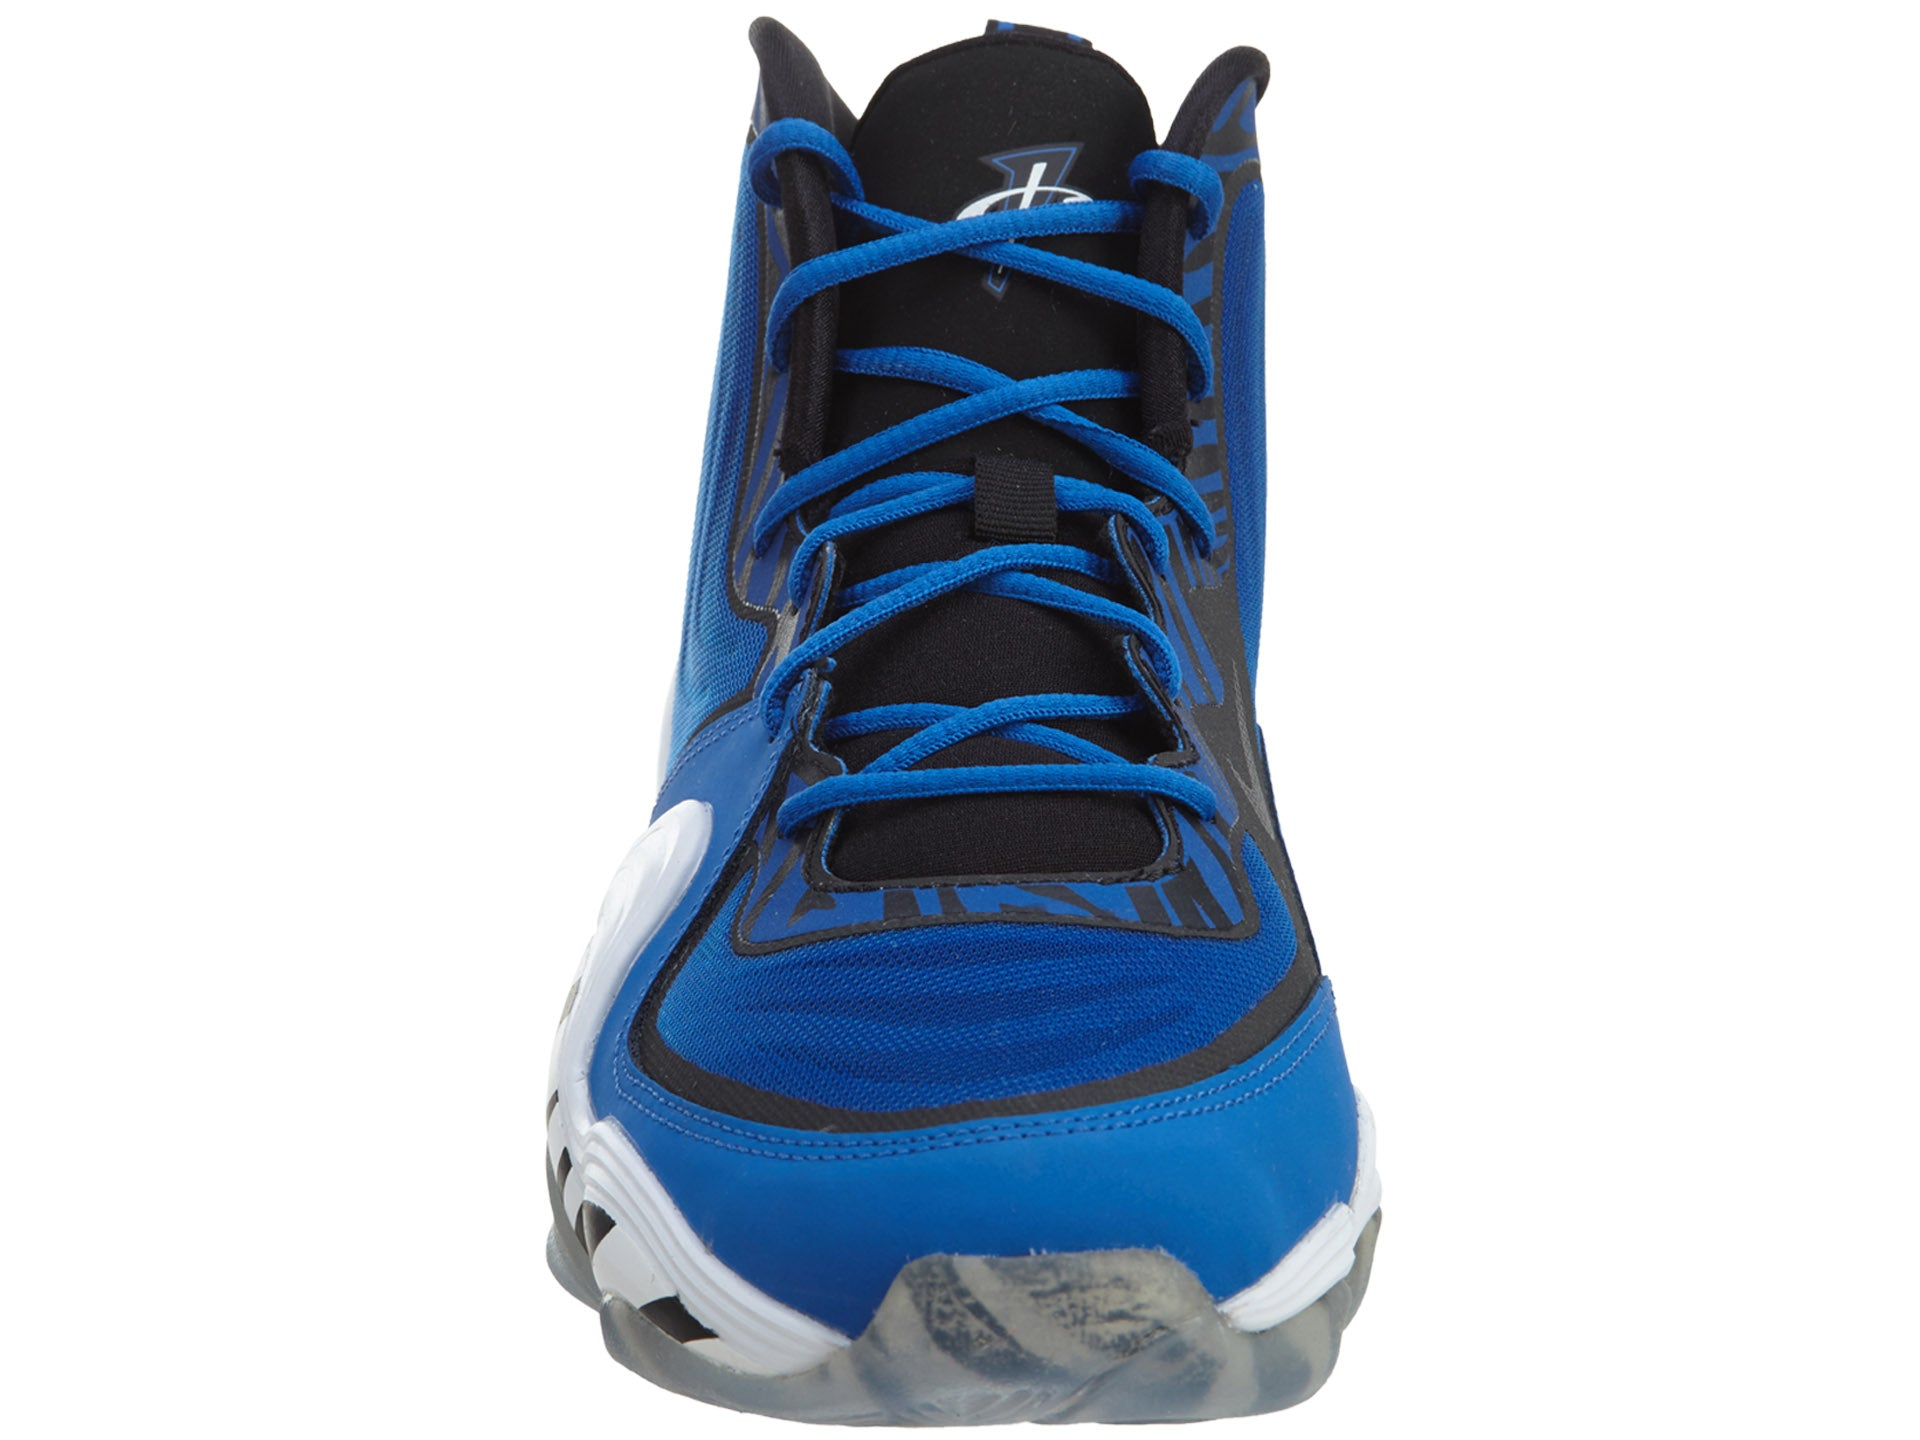 reputable site b4ac8 9d515 Nike Air Penny 5 (Gs) Big Kids Style   537640